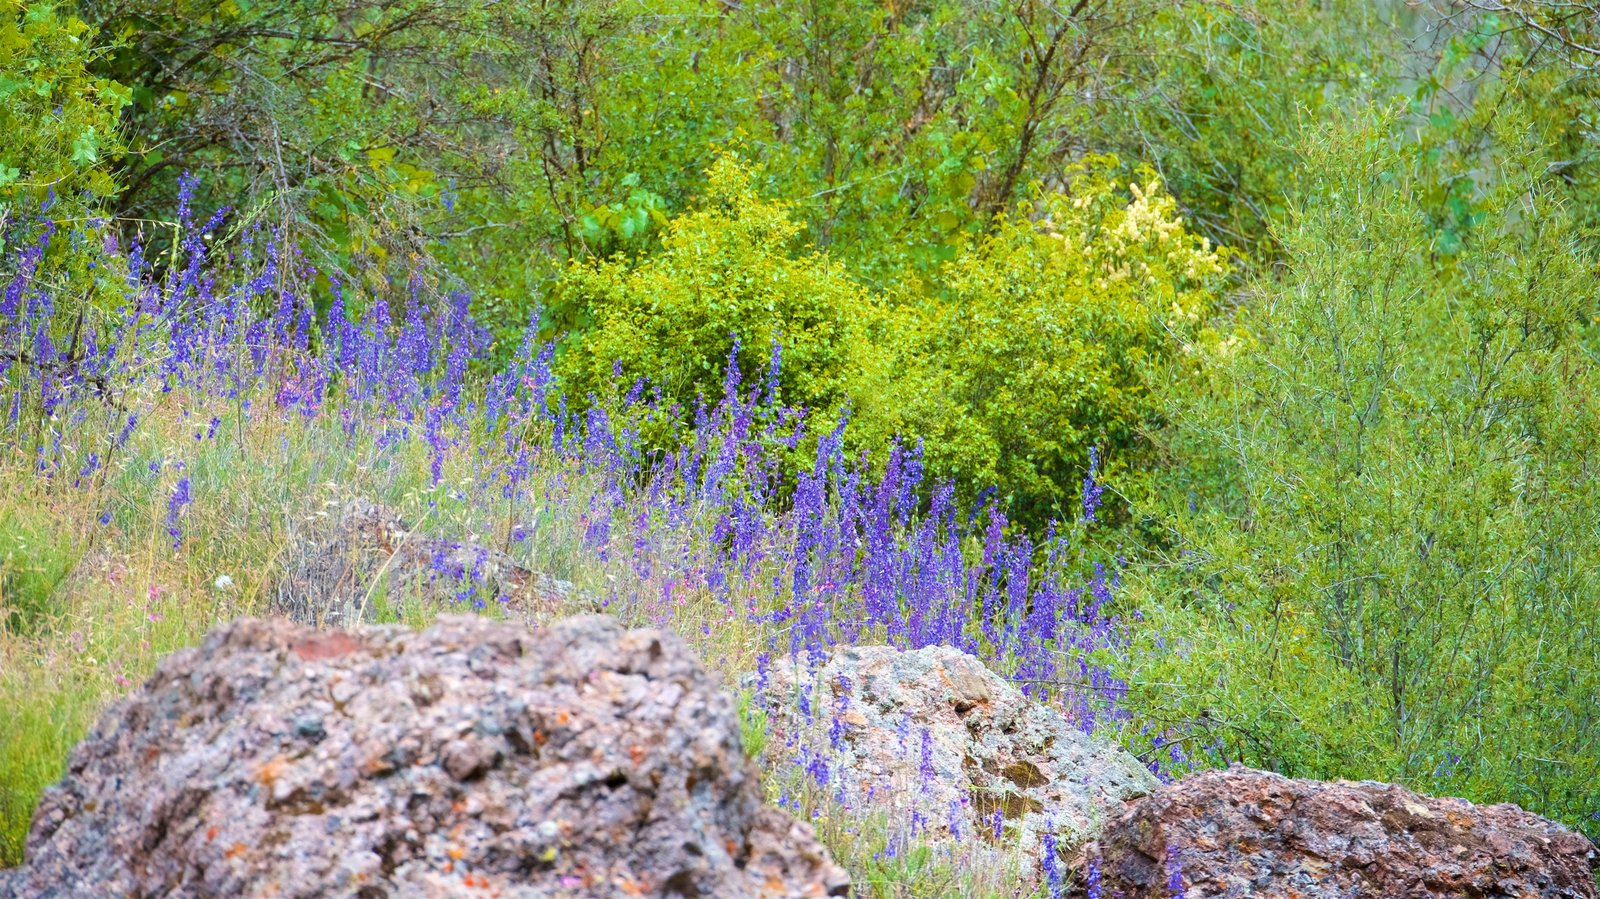 Pinnacles National Park which includes wildflowers and tranquil scenes